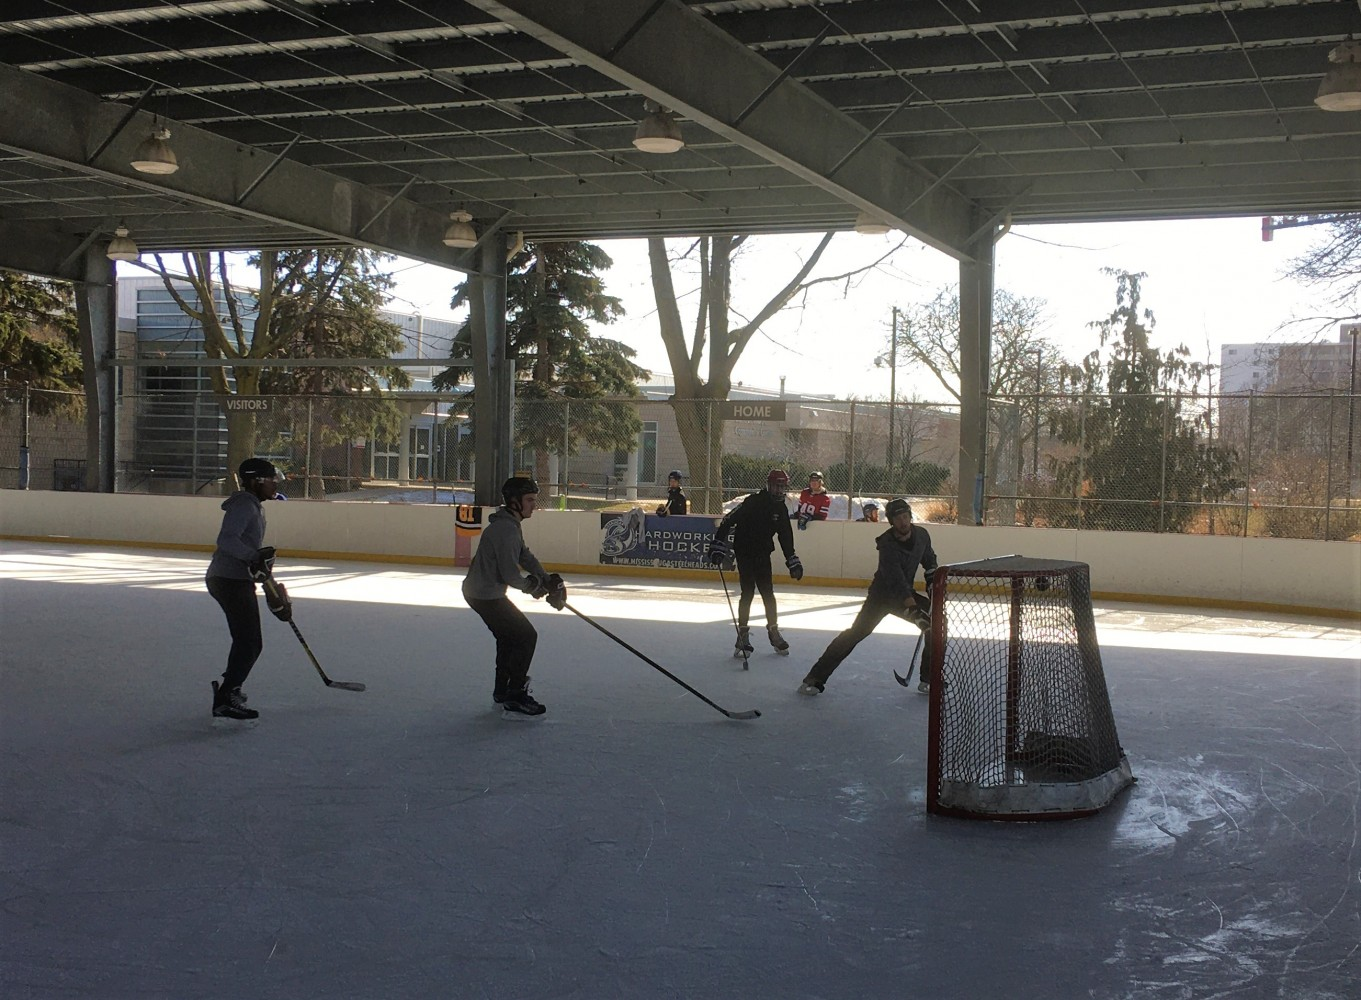 Hockey in Mississauga takes another hit; devastated residents fighting plan to destroy unique outdoor ice rink